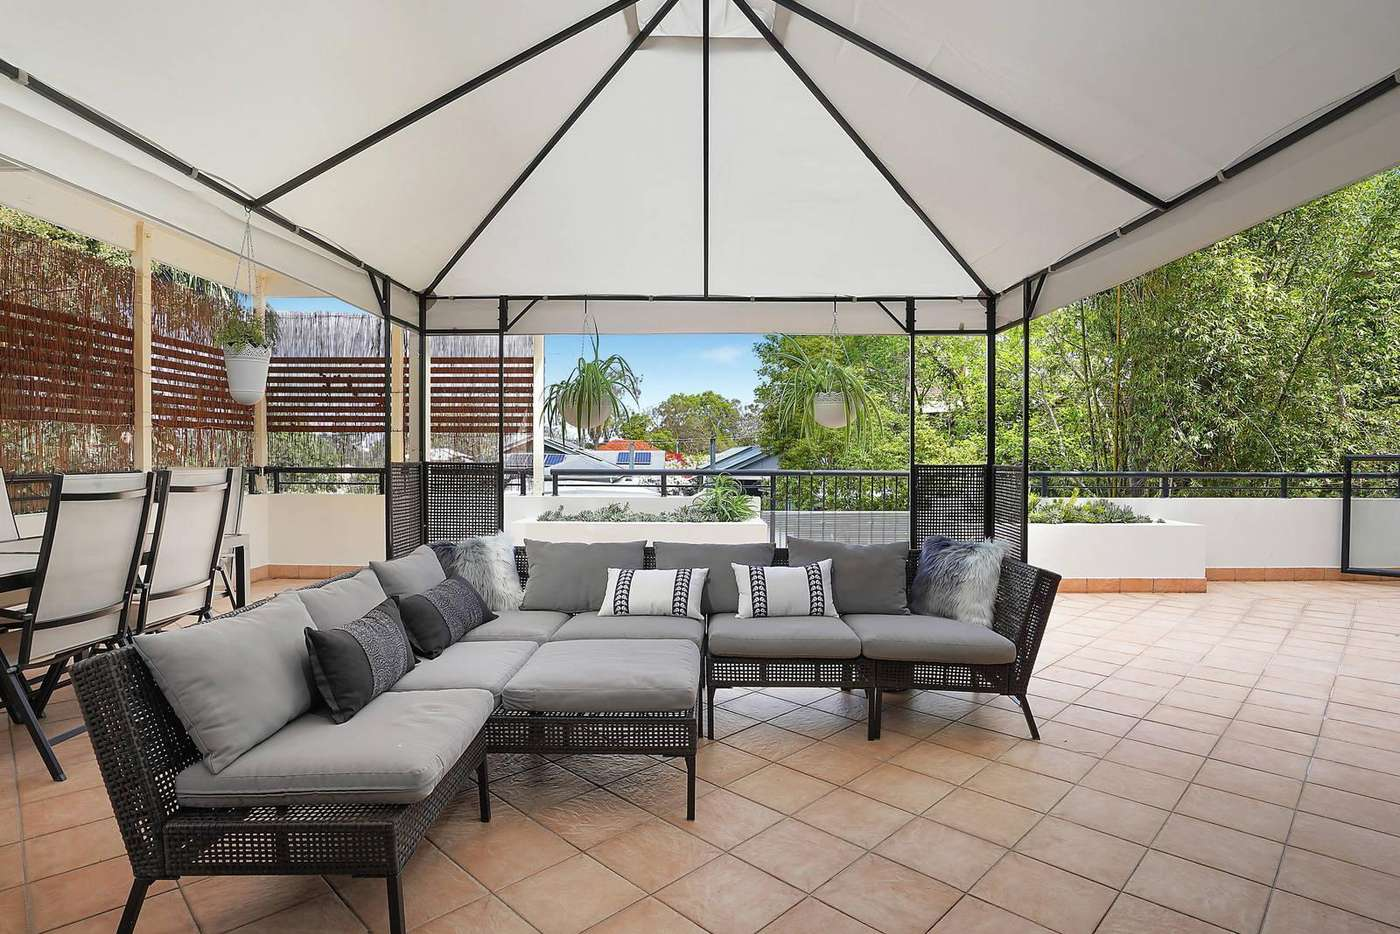 Sixth view of Homely house listing, 61 Seventh Avenue, St Lucia QLD 4067